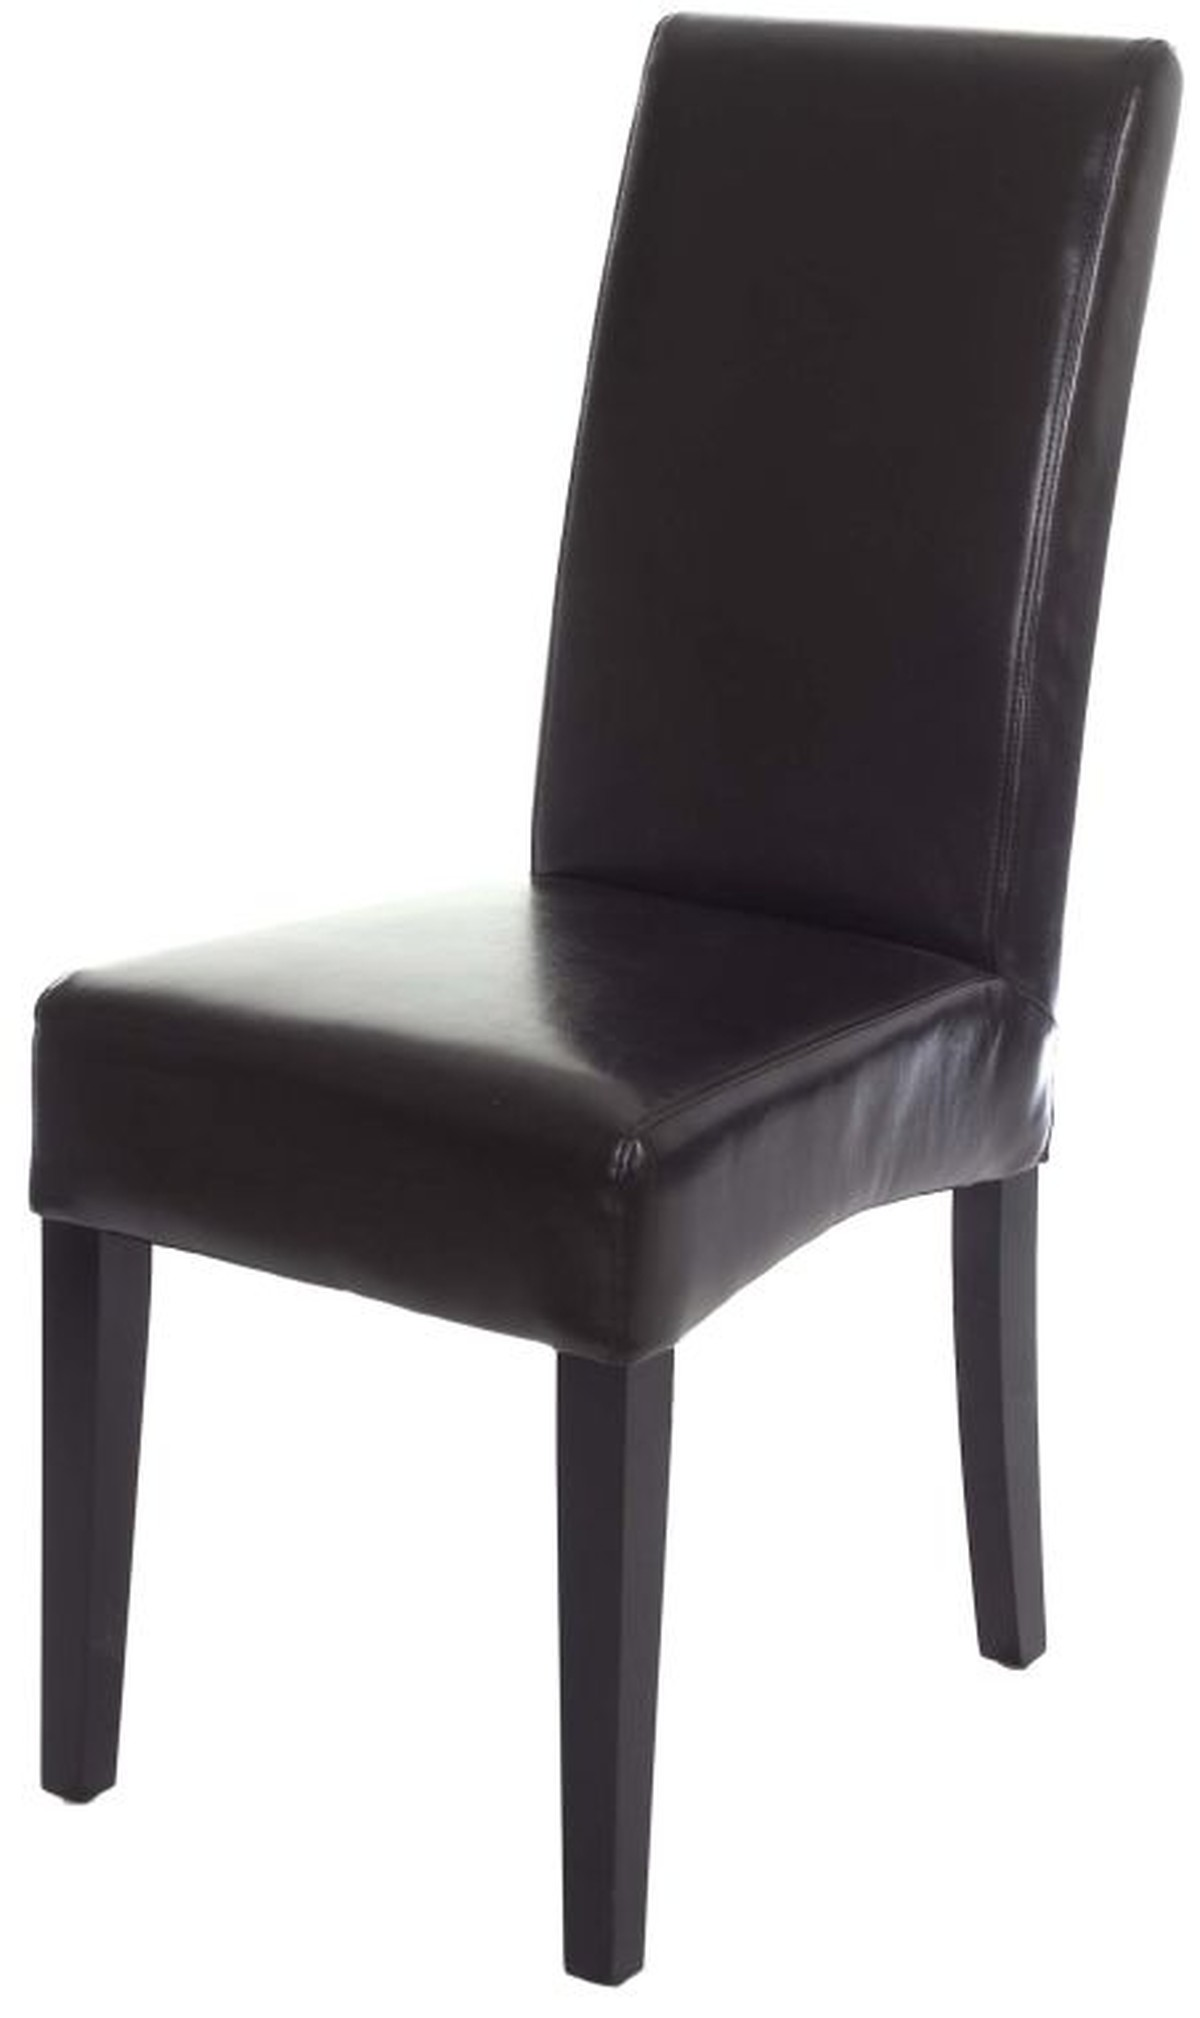 Restaurant Chairs For Sale Secondhand Chairs And Tables Restaurant Chairs 32x